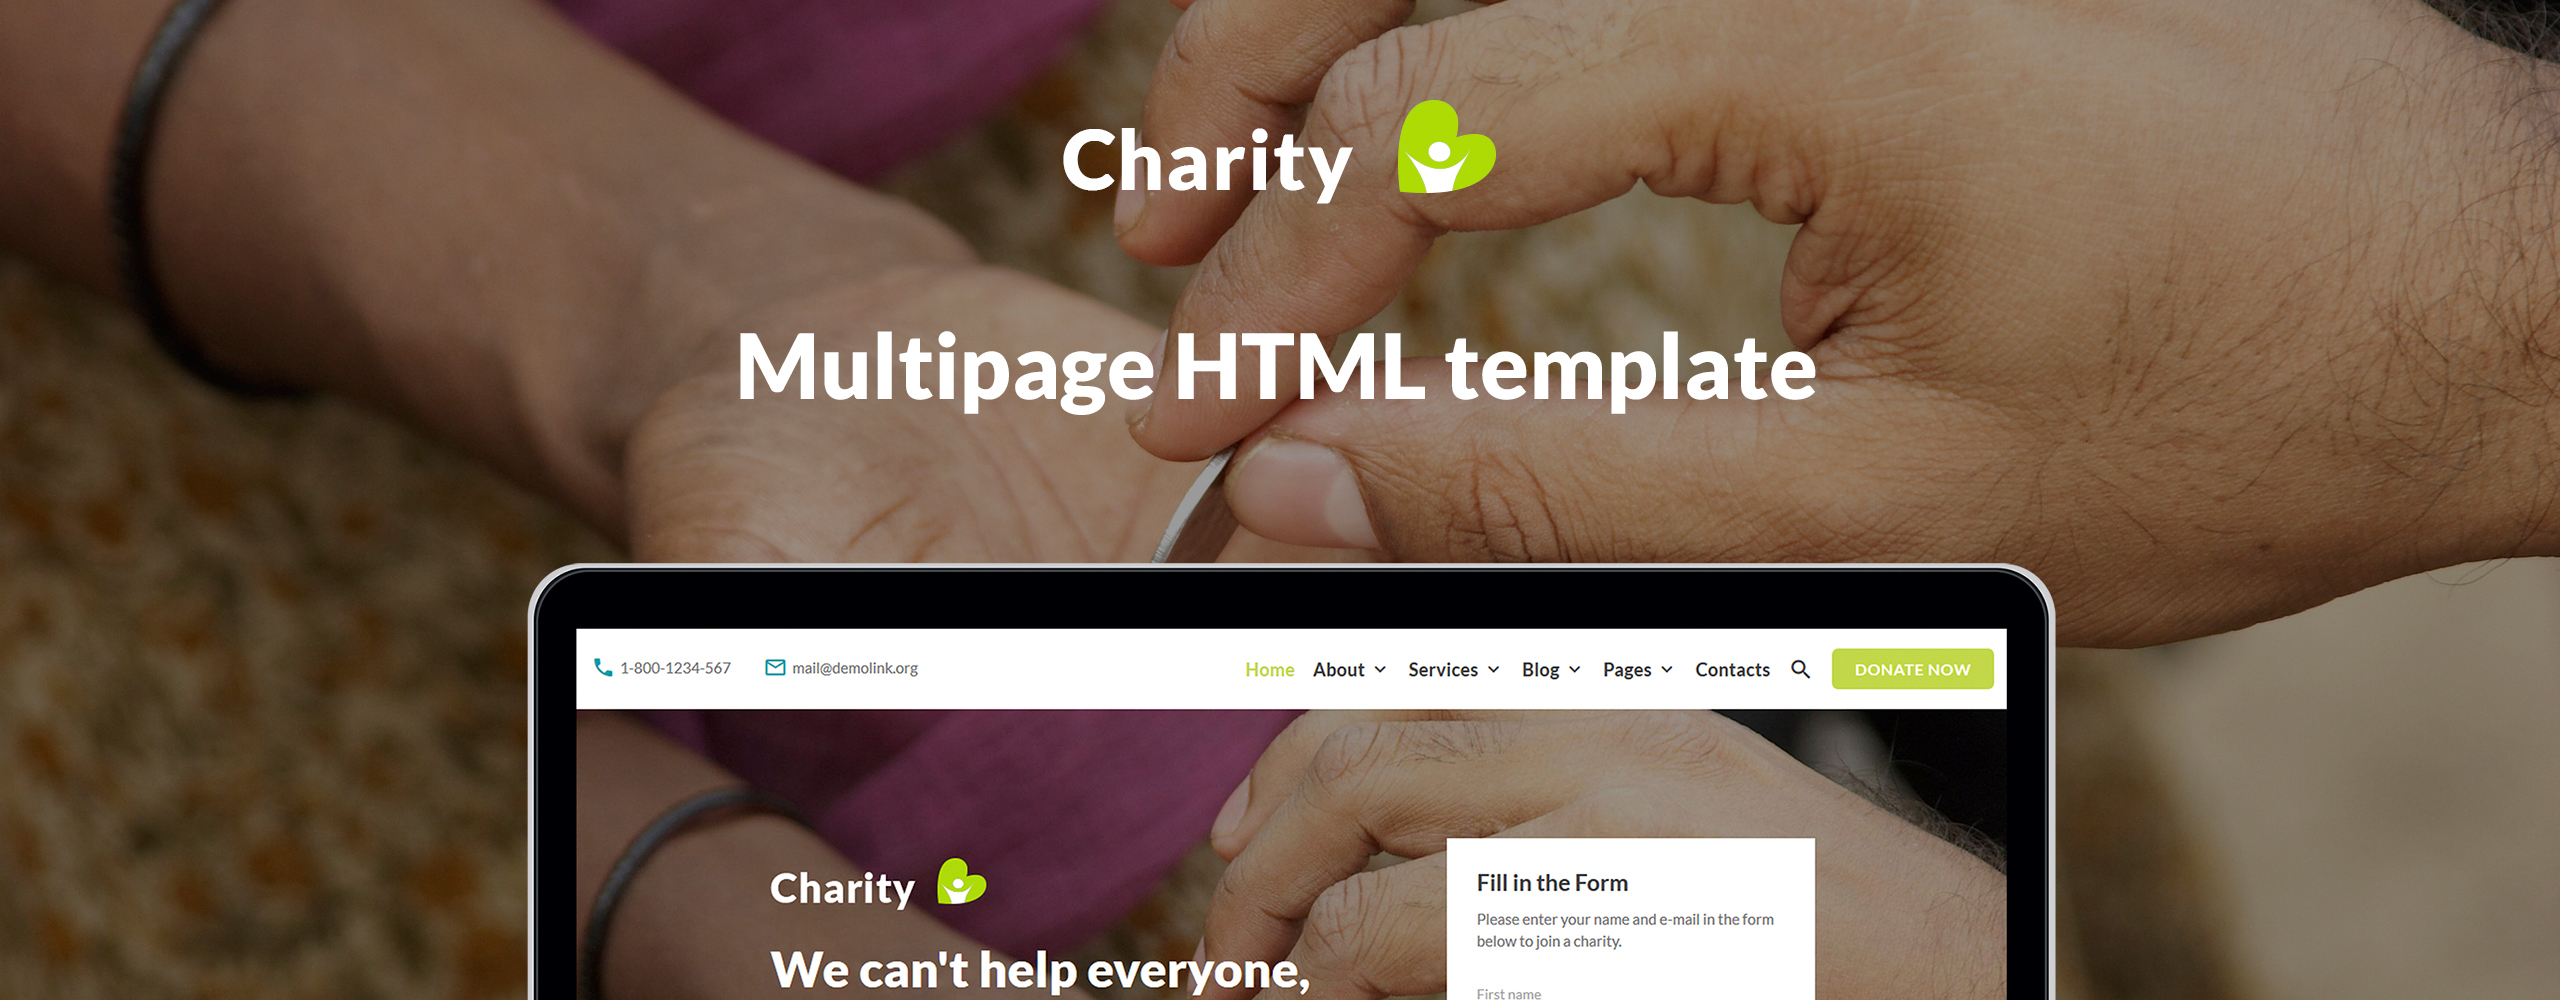 Charity HTML Website Template